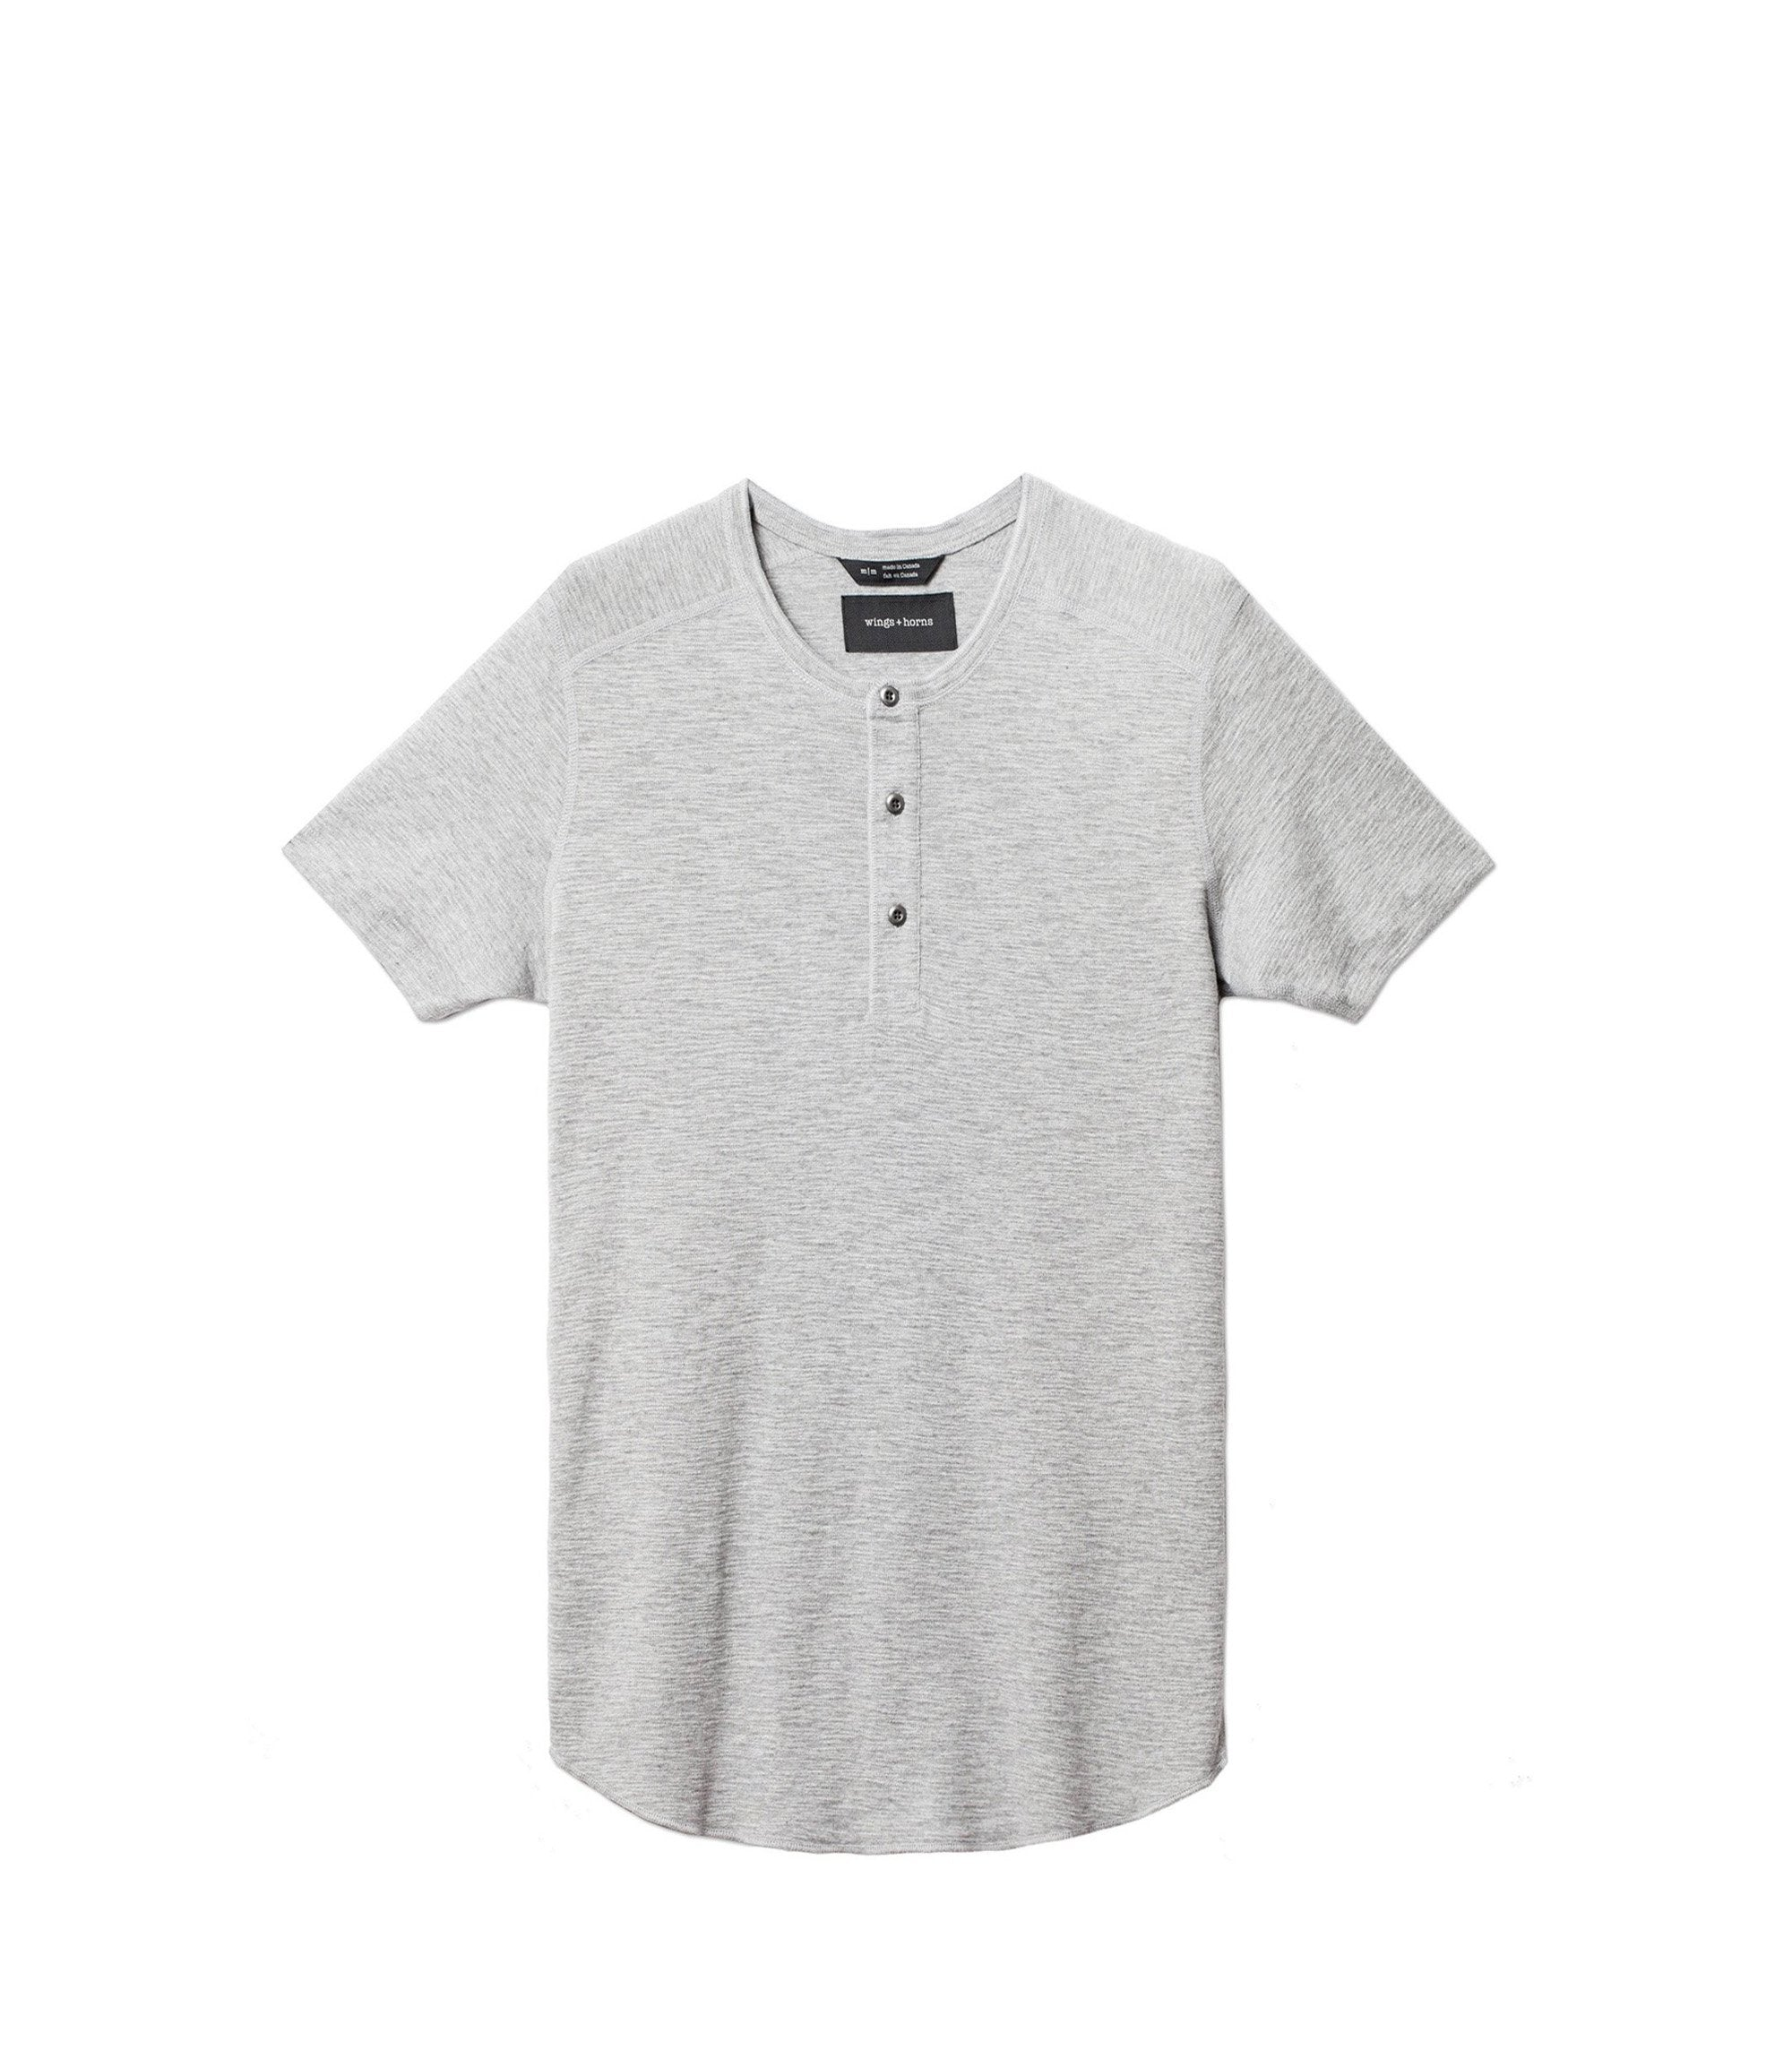 WINGS + HORNS M'S T-SHIRTS Gry L BASE S/S HENLEY